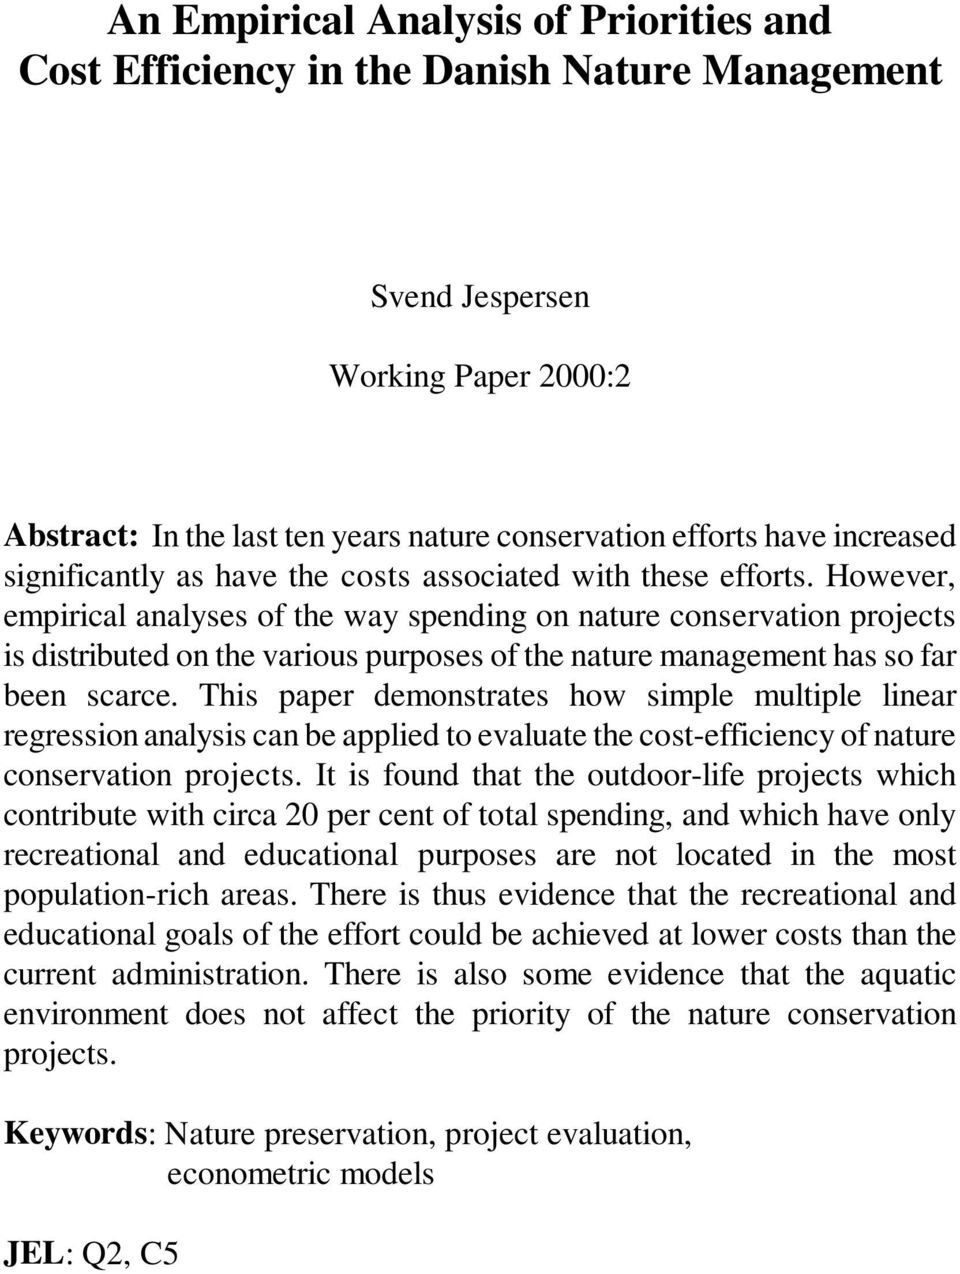 However, empirical analyses of the way spending on nature conservation projects is distributed on the various purposes of the nature management has so far been scarce.